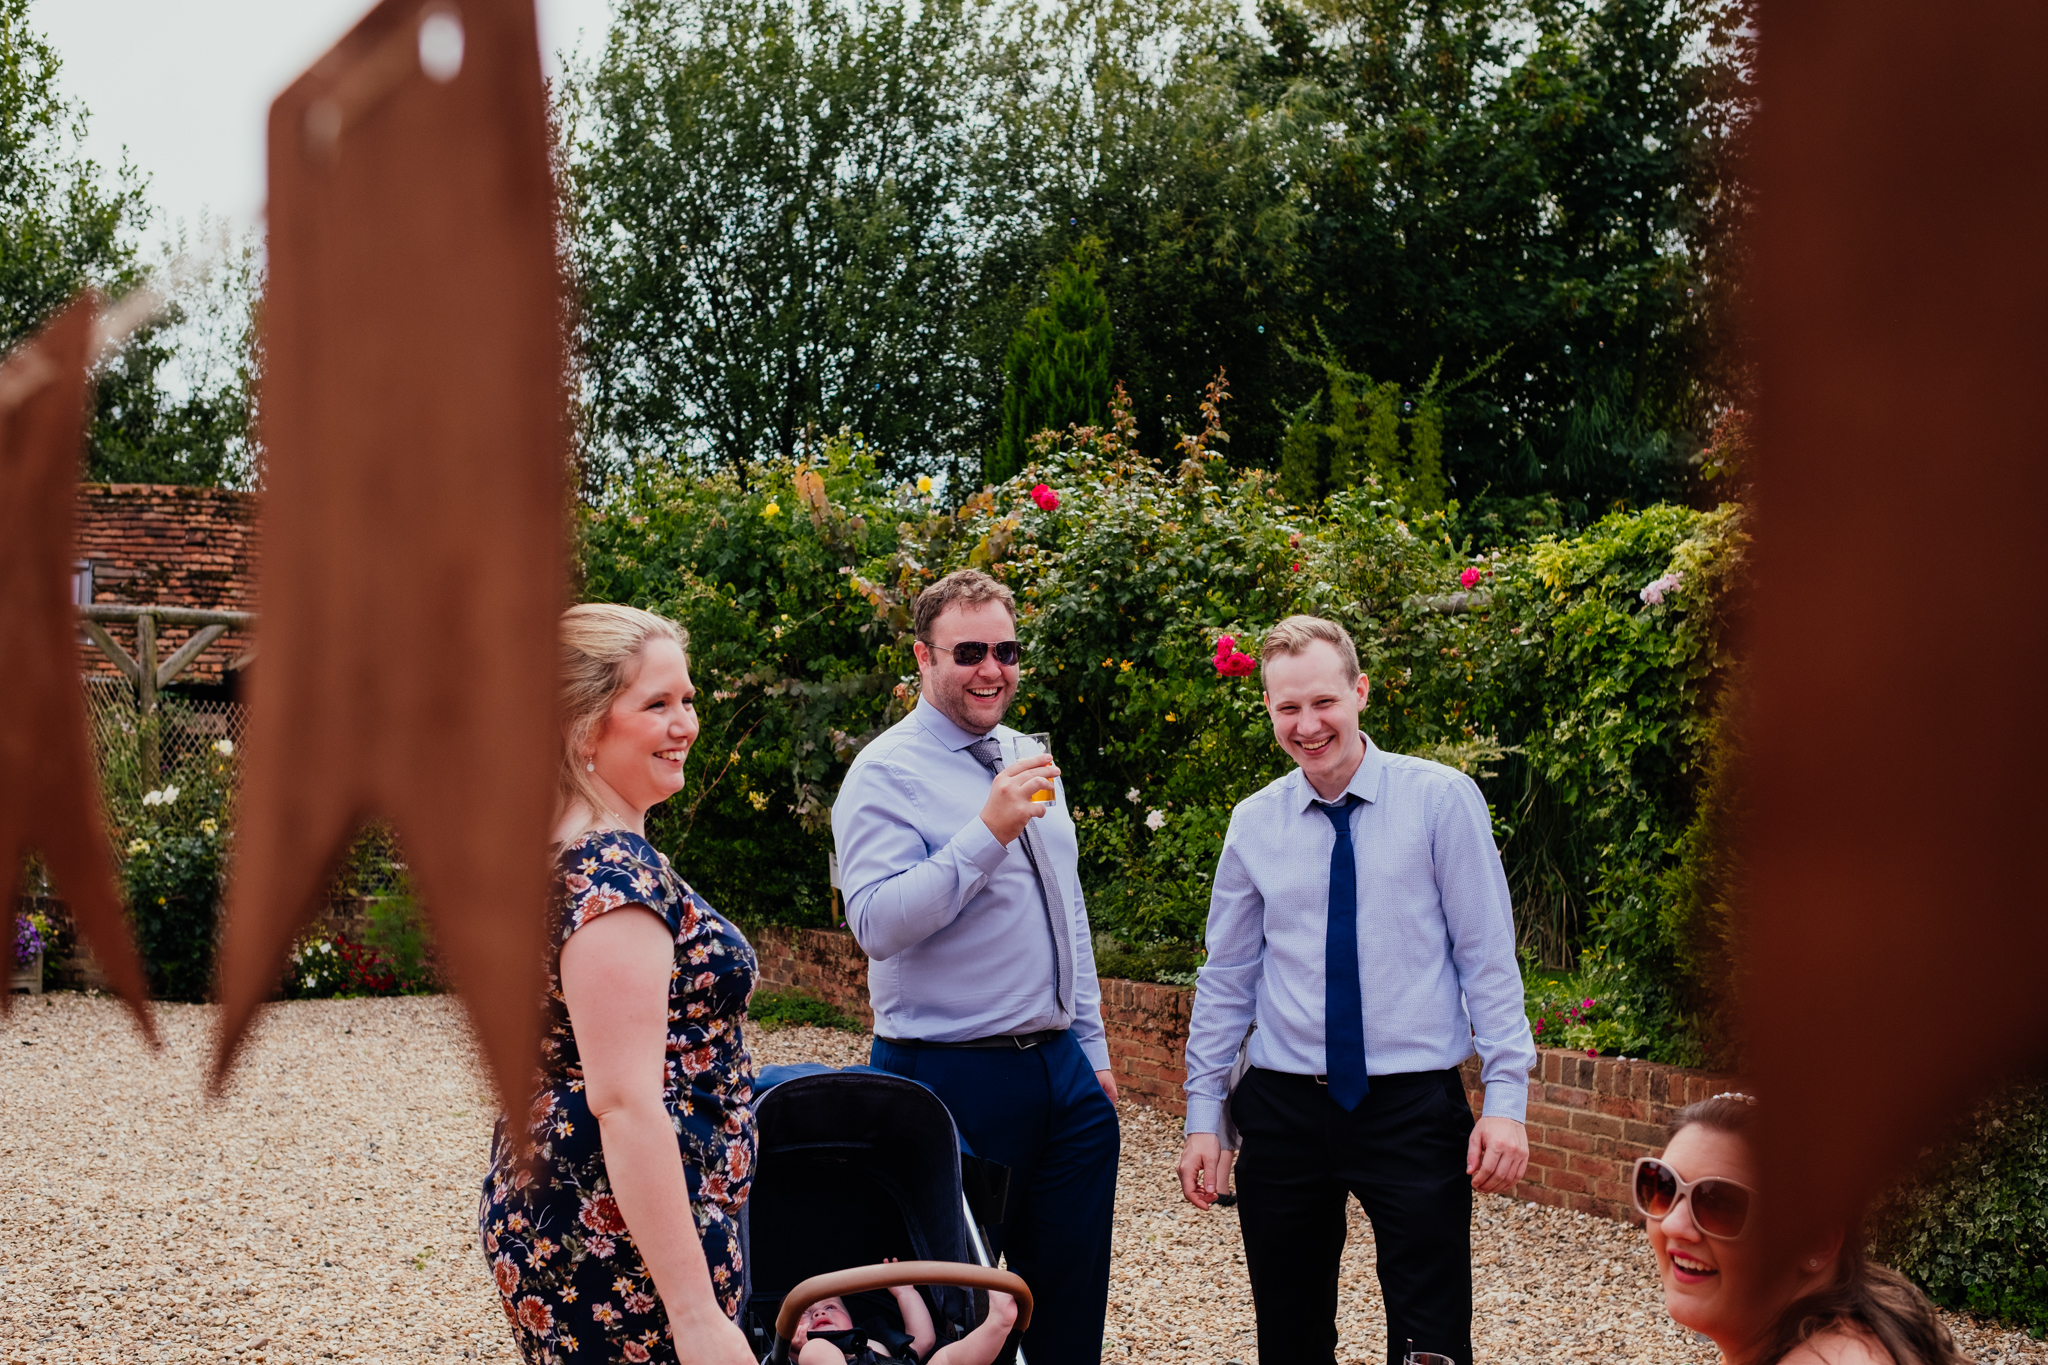 Wedding guests at Rumbolds Farm summer wedding